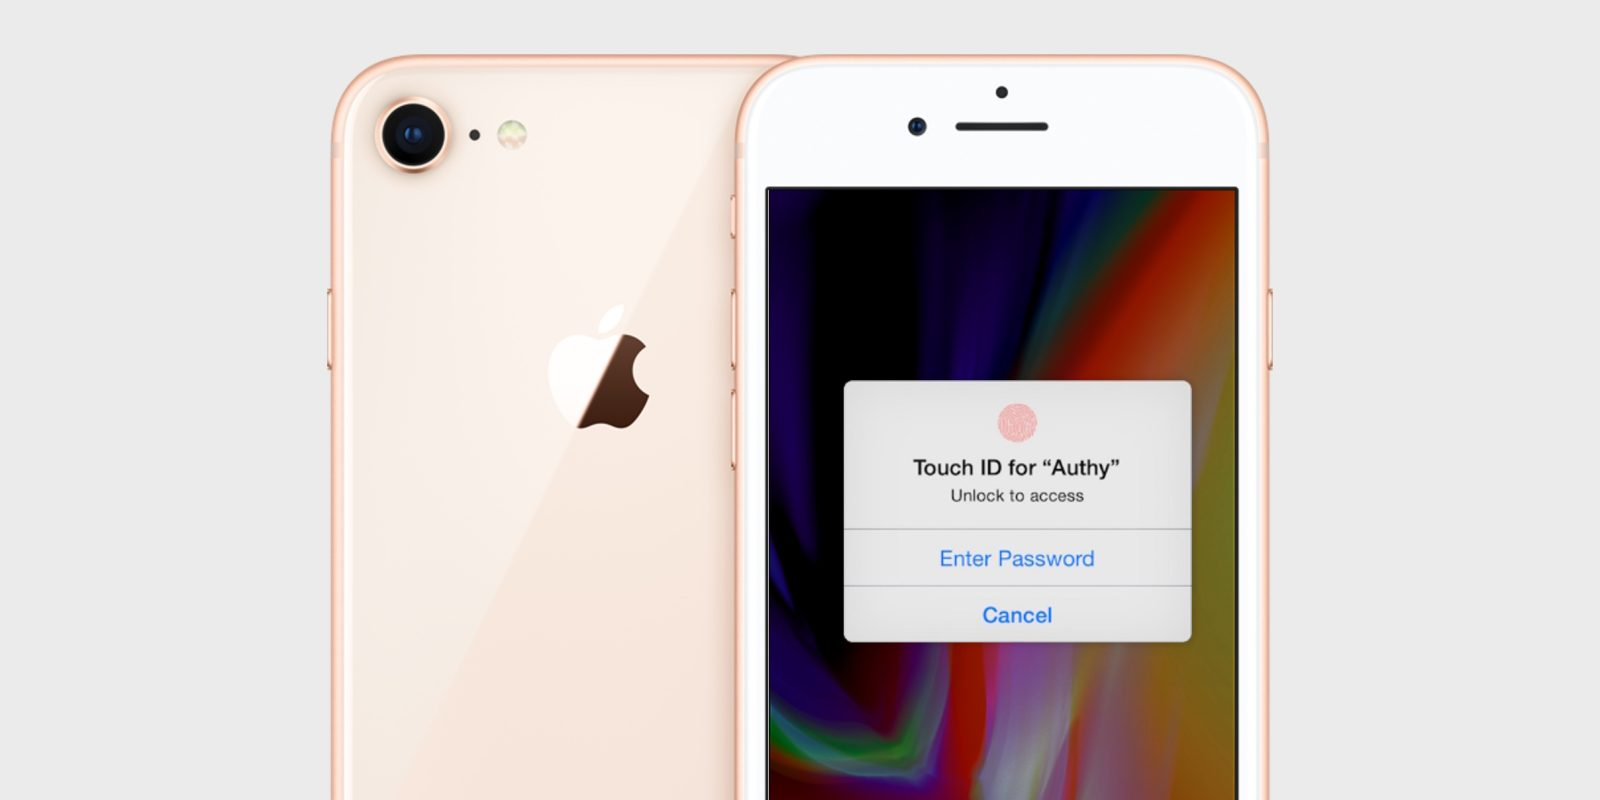 Cannot log in to your banking apps on the iPhone? iOS 13 Touch ID bug may be the reason